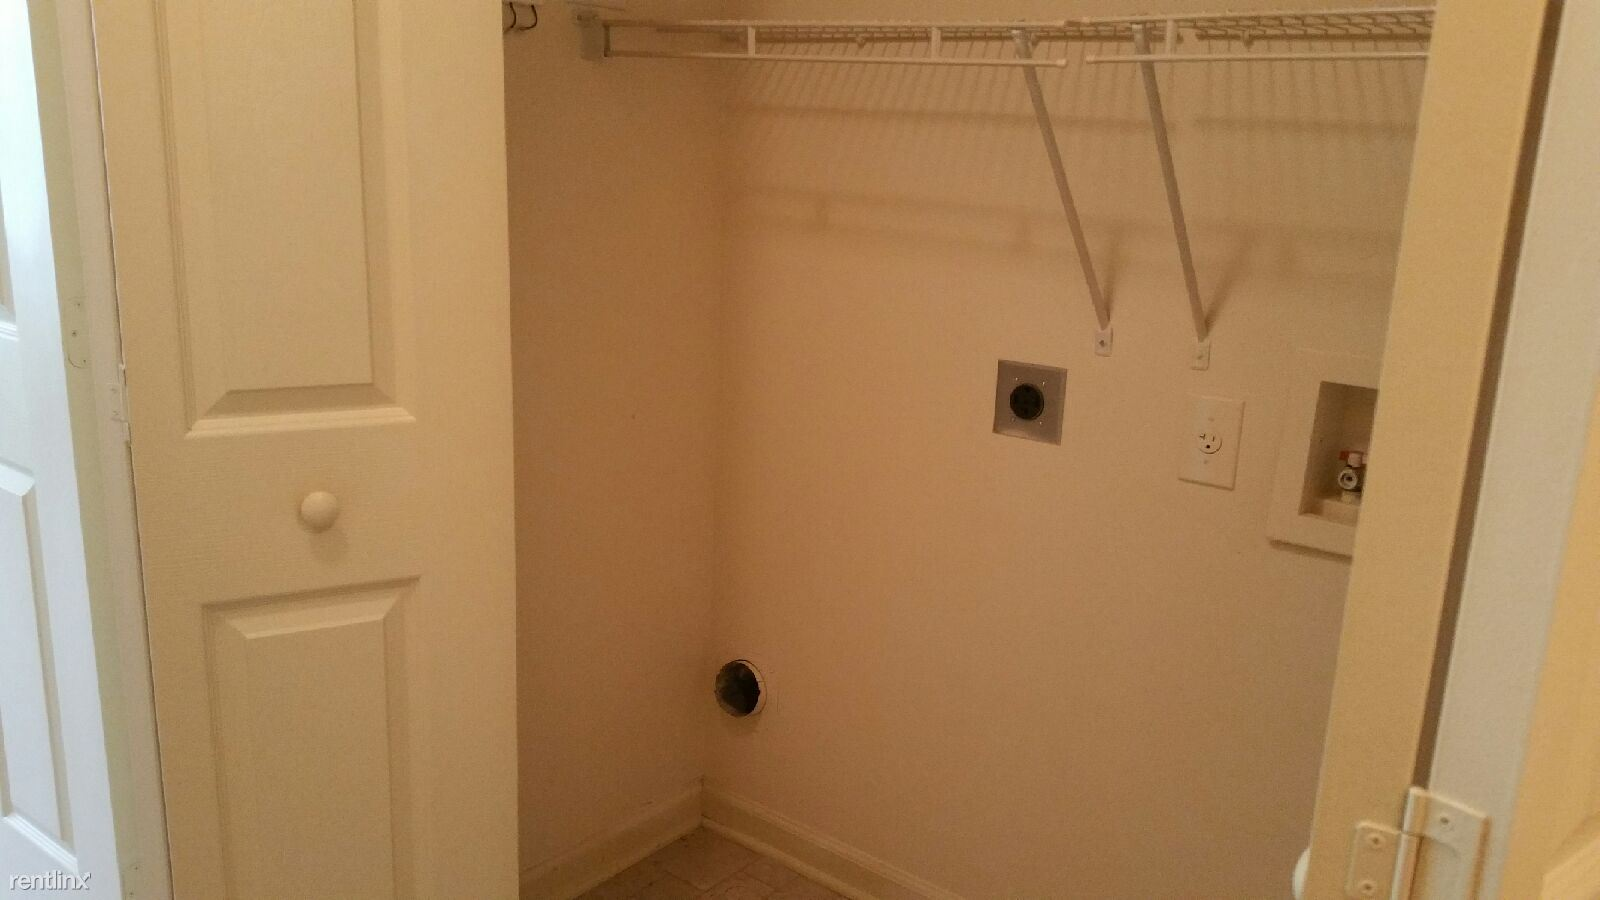 2 BEDROOM LAUNDRY SPACE